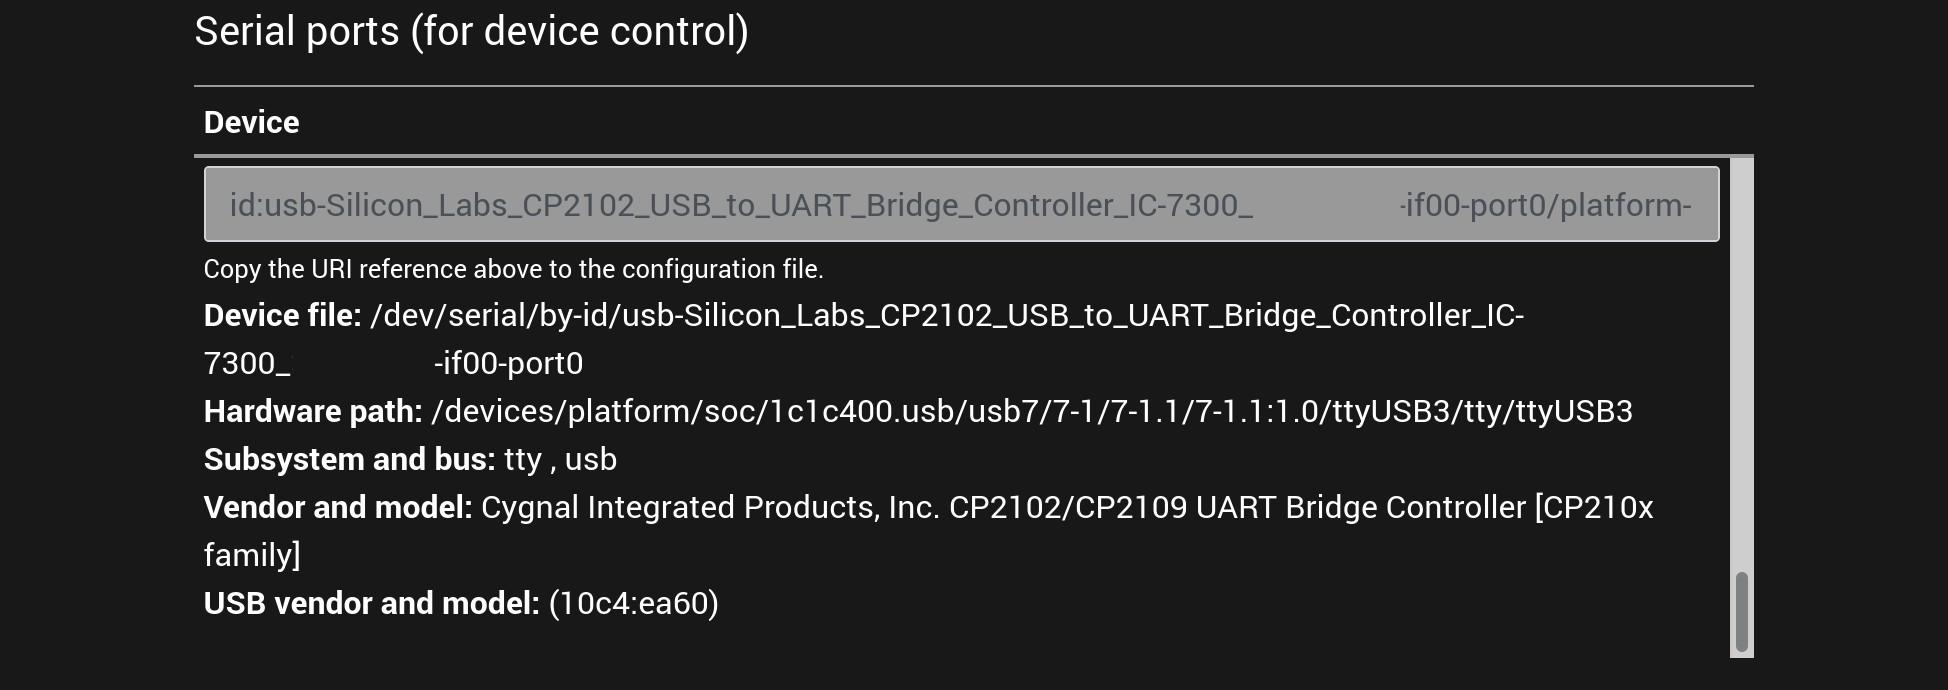 An example screenshot of the list of supported serial ports displayed in the setup user interface